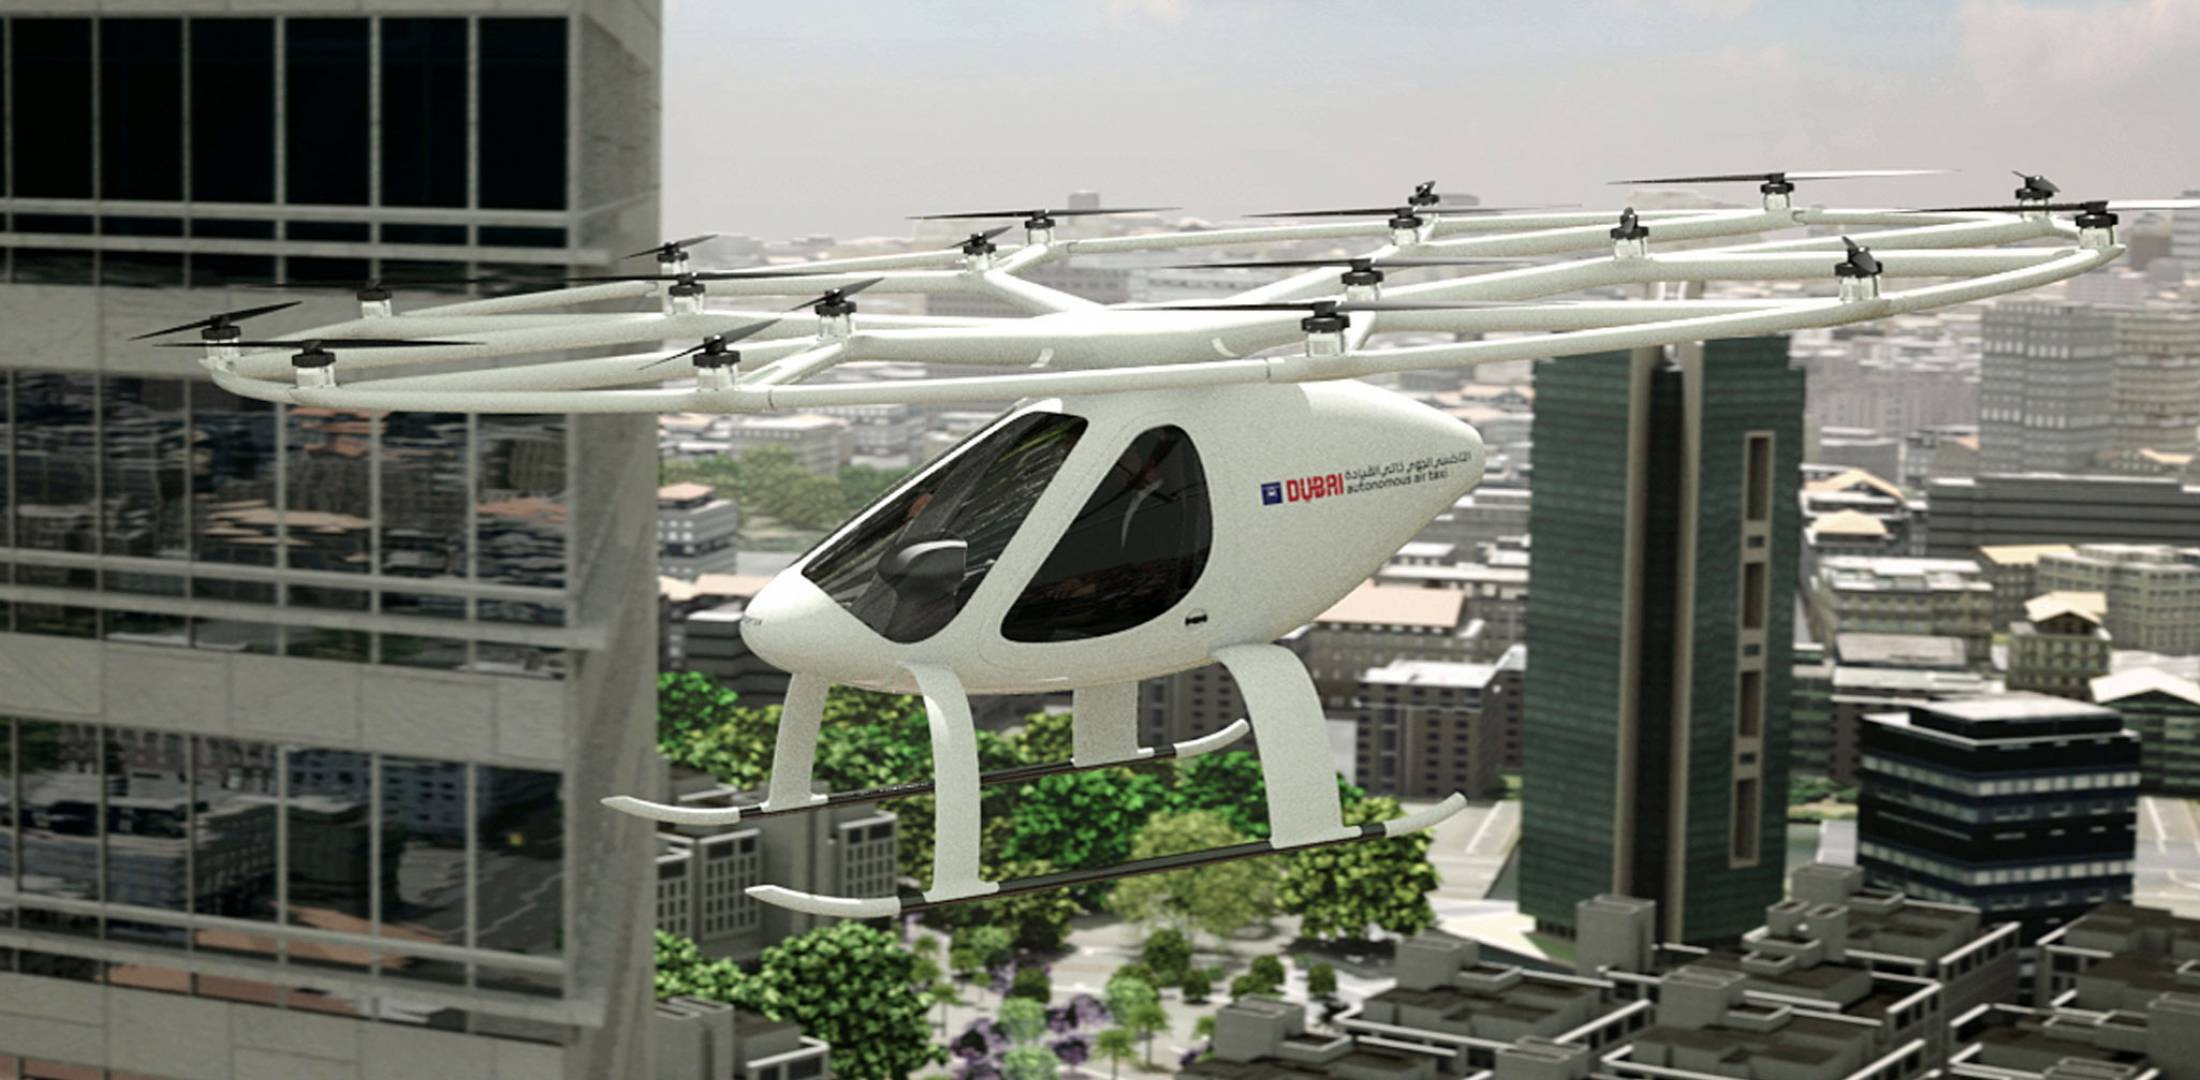 Autonomous electric helicopter tested in Dubai.